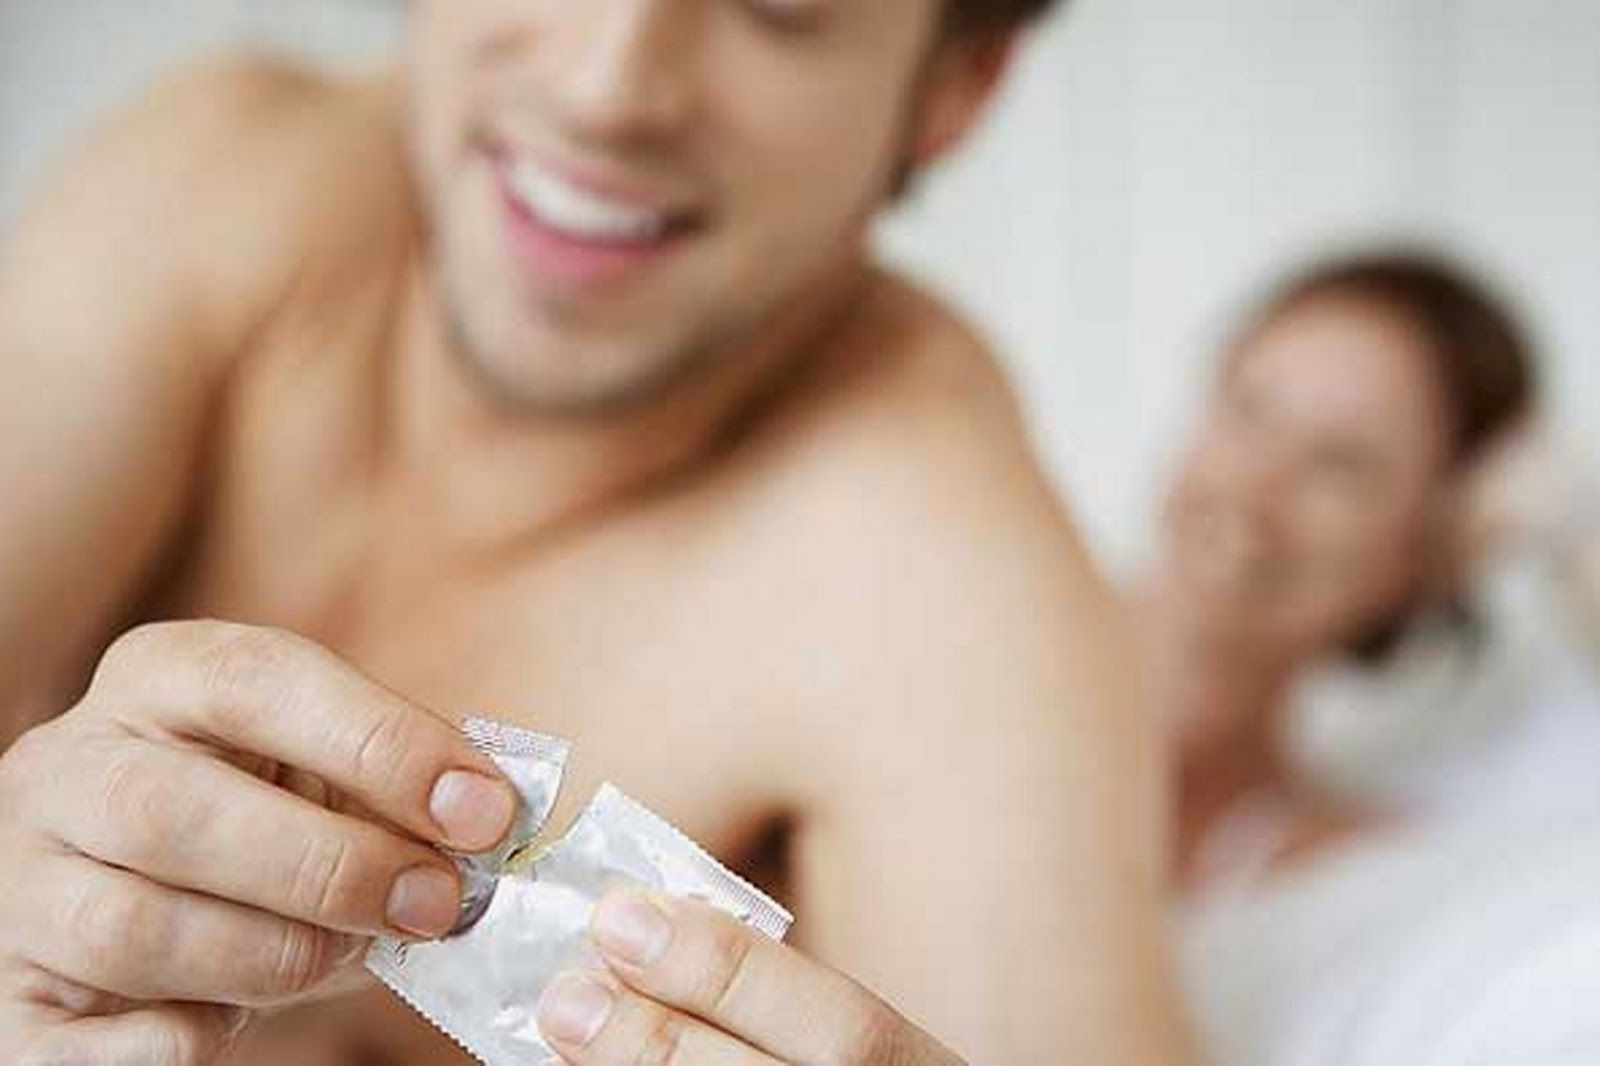 Never have any type of sexual intercourse without condoms #blackfriday…